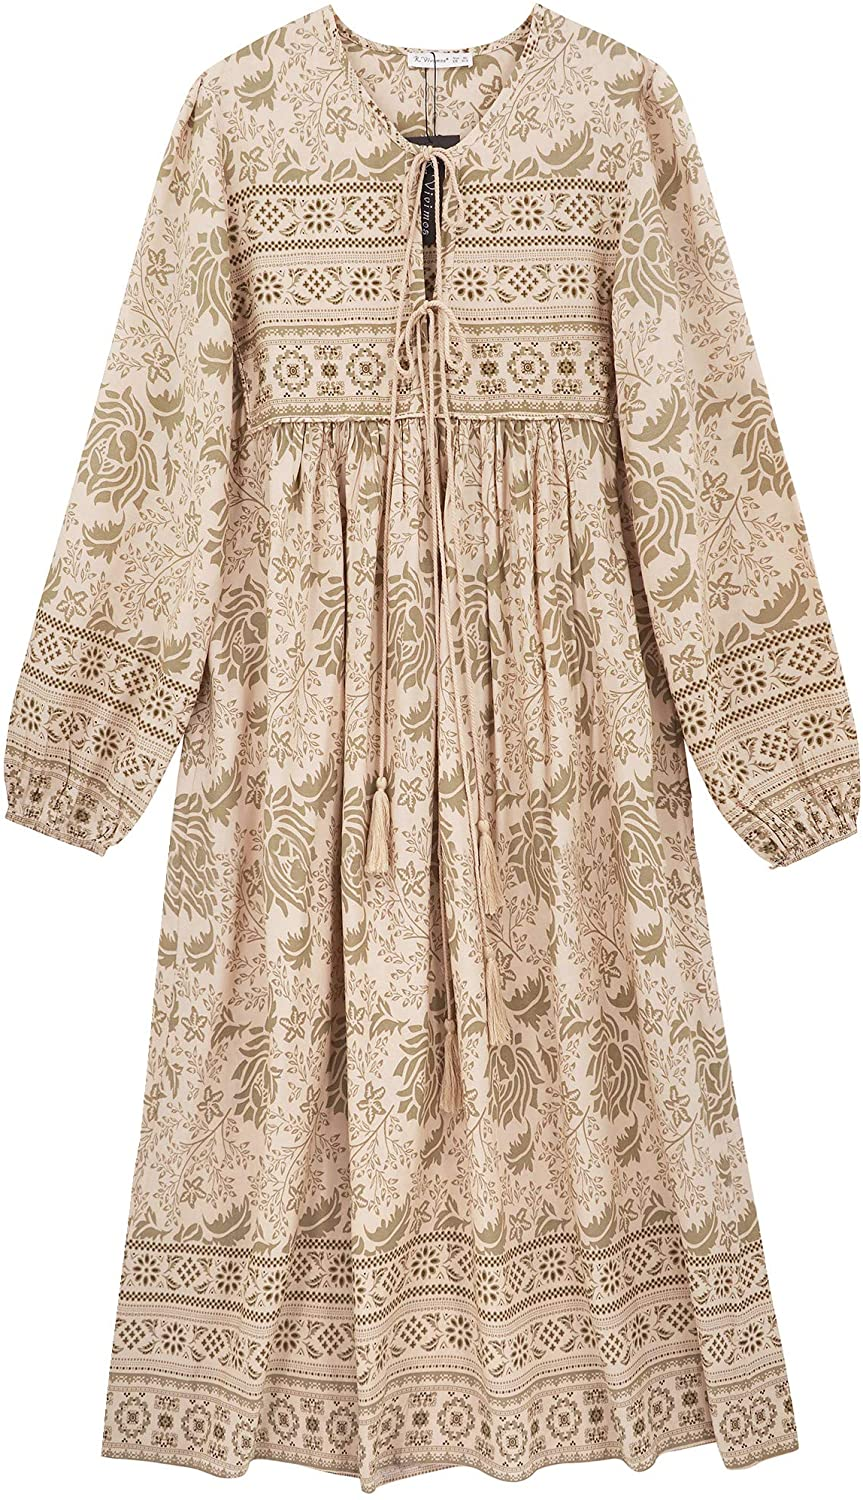 Cottagecore Dresses Aesthetic, Granny, Vintage R.Vivimos Womens Long Sleeve Floral Print Retro V Neck Tassel Bohemian Midi Dresses $29.99 AT vintagedancer.com